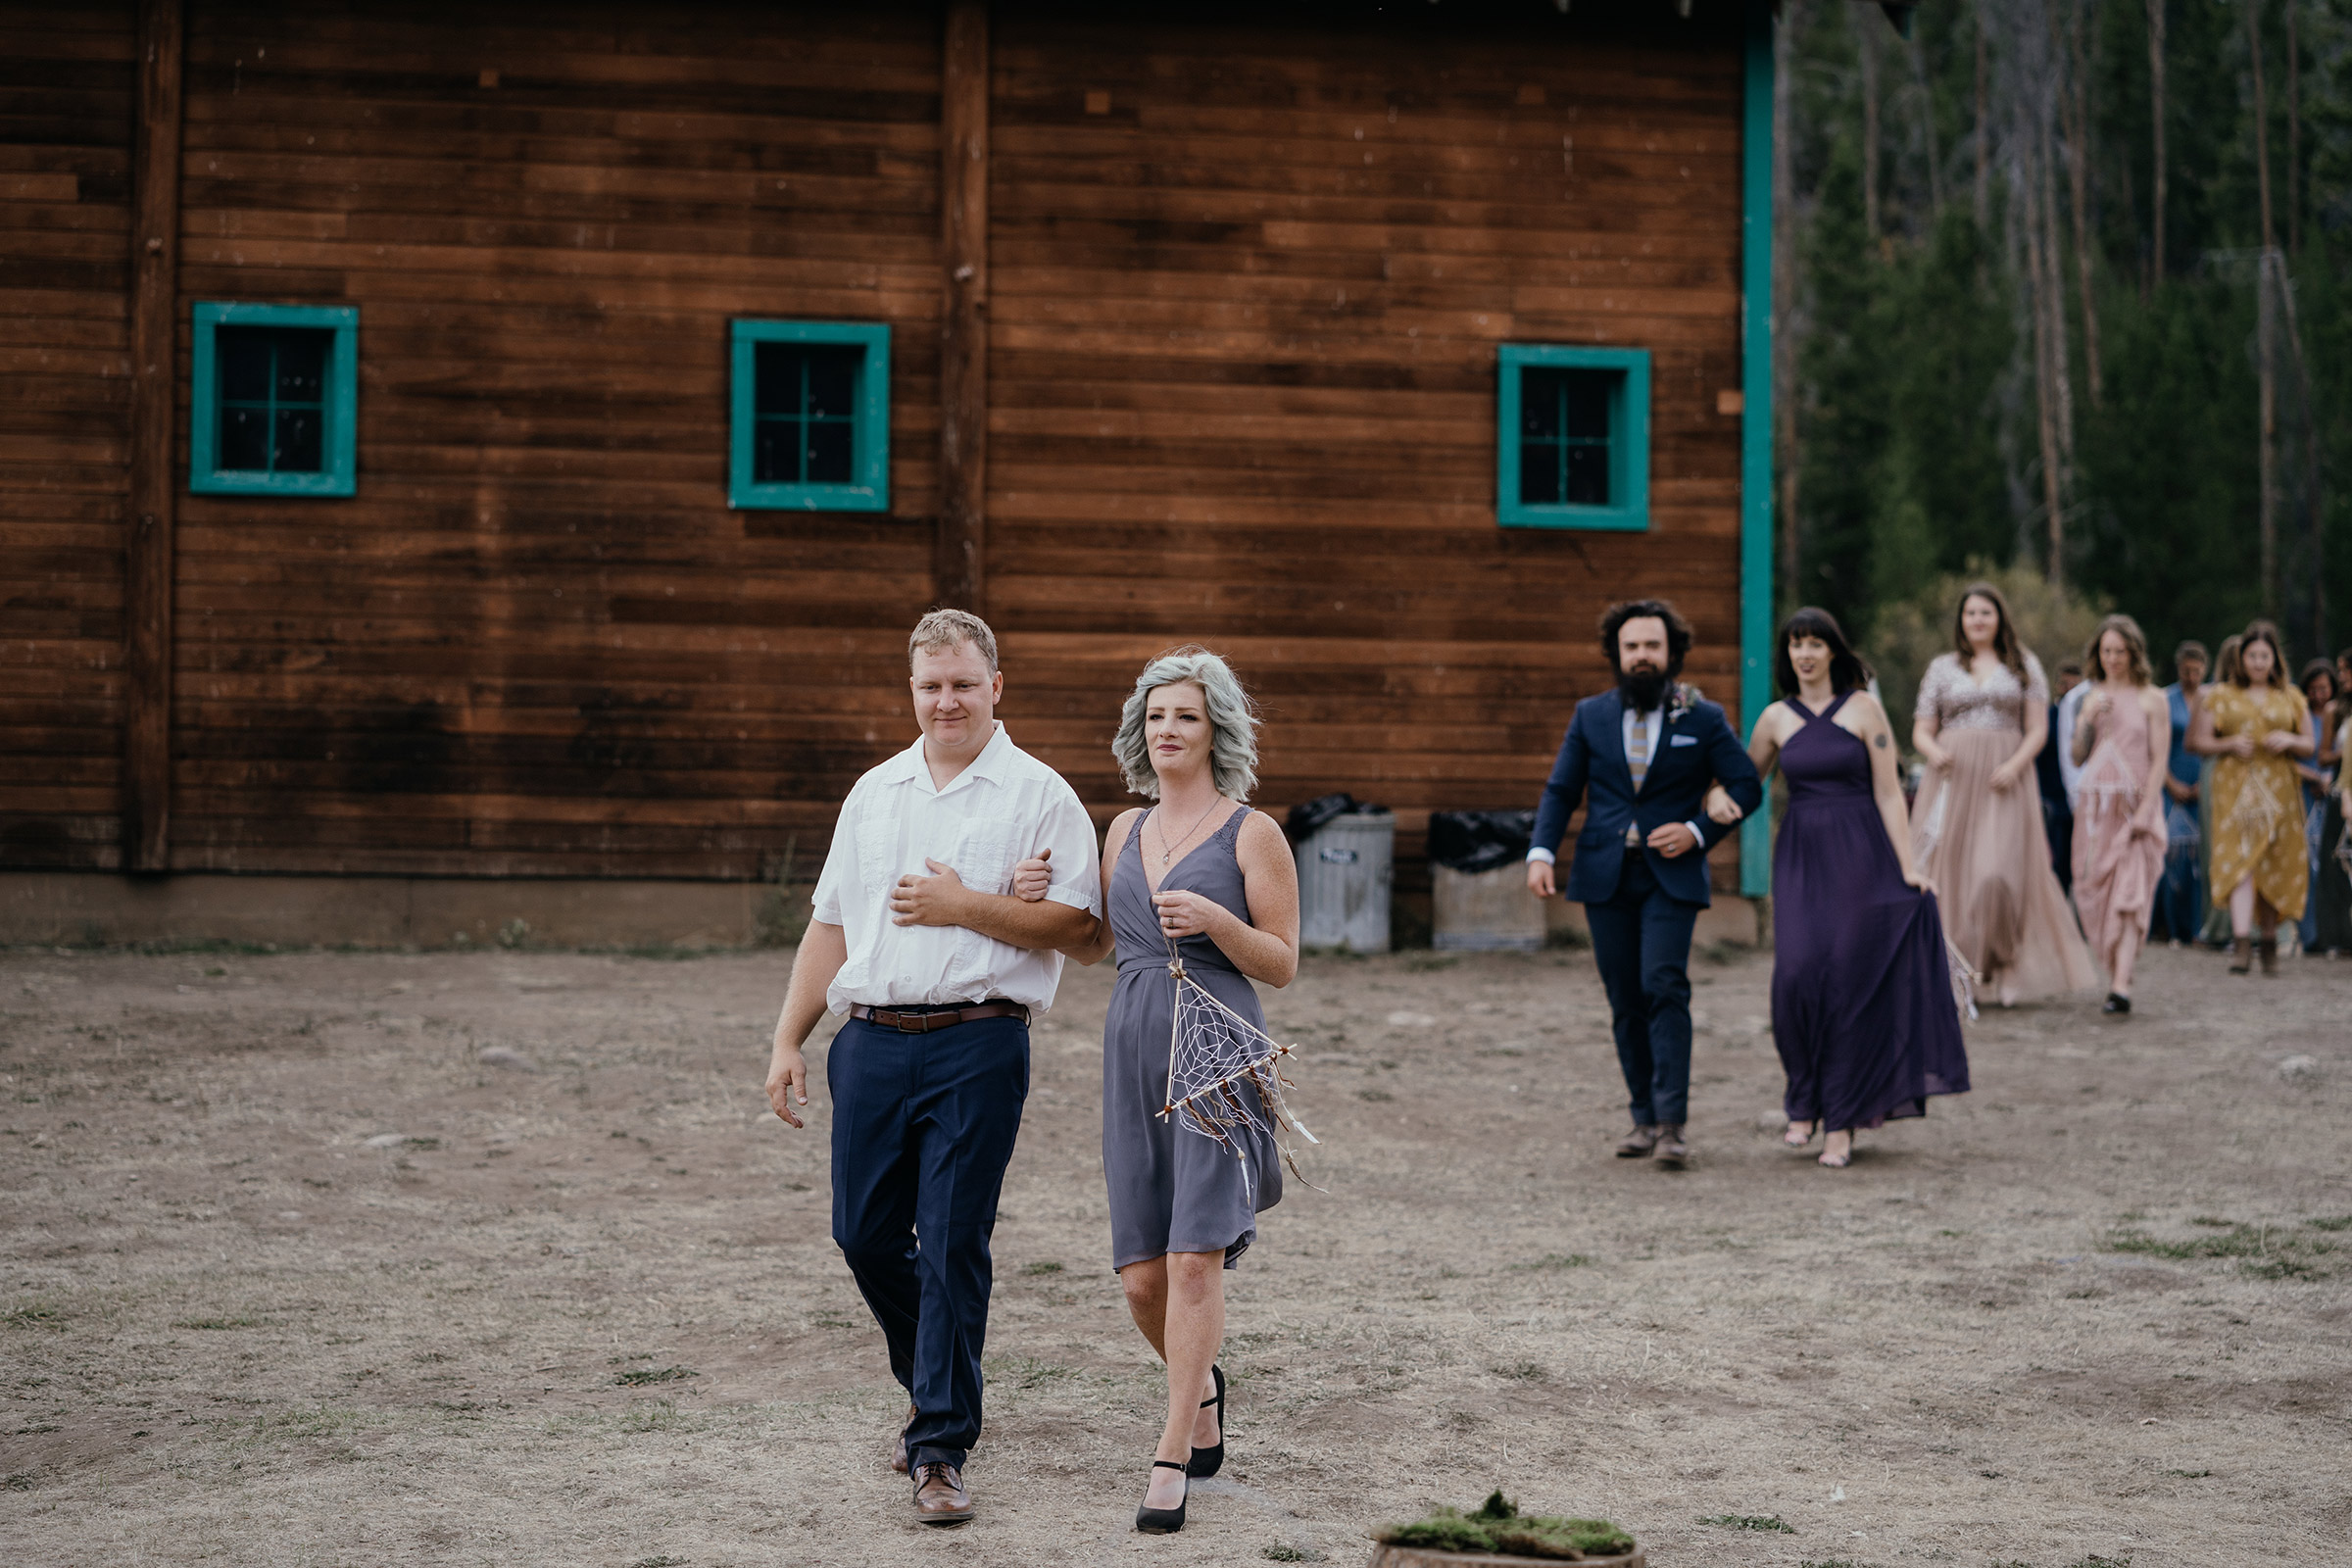 bridesmaids-groomsmen-walking-down-wedding-aisle-double-a-barn-grand-lake-colorado-raelyn-ramey-photography-407.jpg